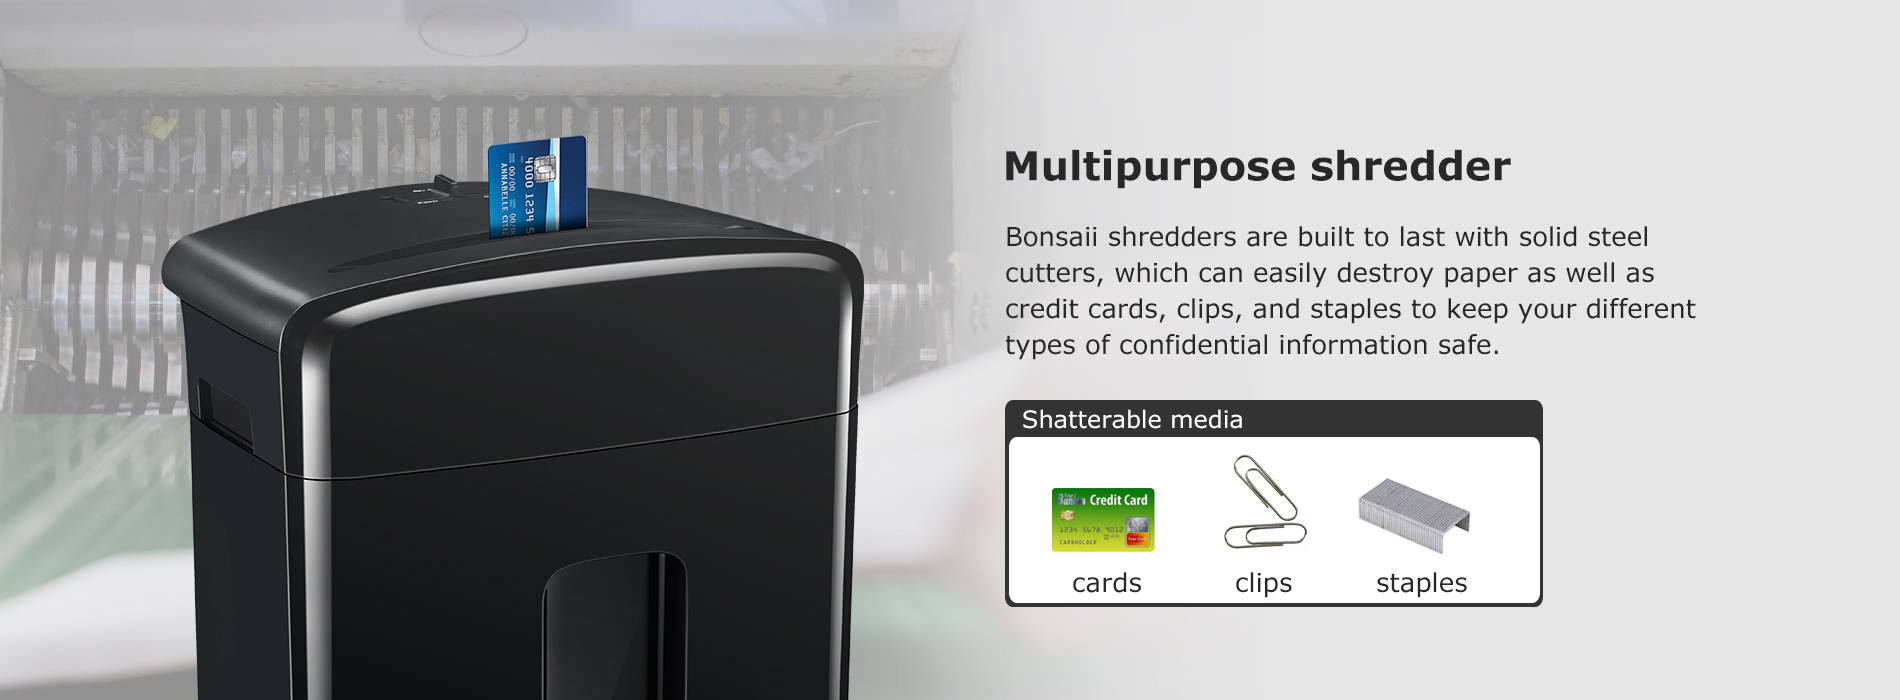 Multipurpose shredder Bonsaii shredders are built to last with solid steel cutters, which can easily destroy paper as well as credit cards, clips, and staples to keep your different types of confidential information safe.